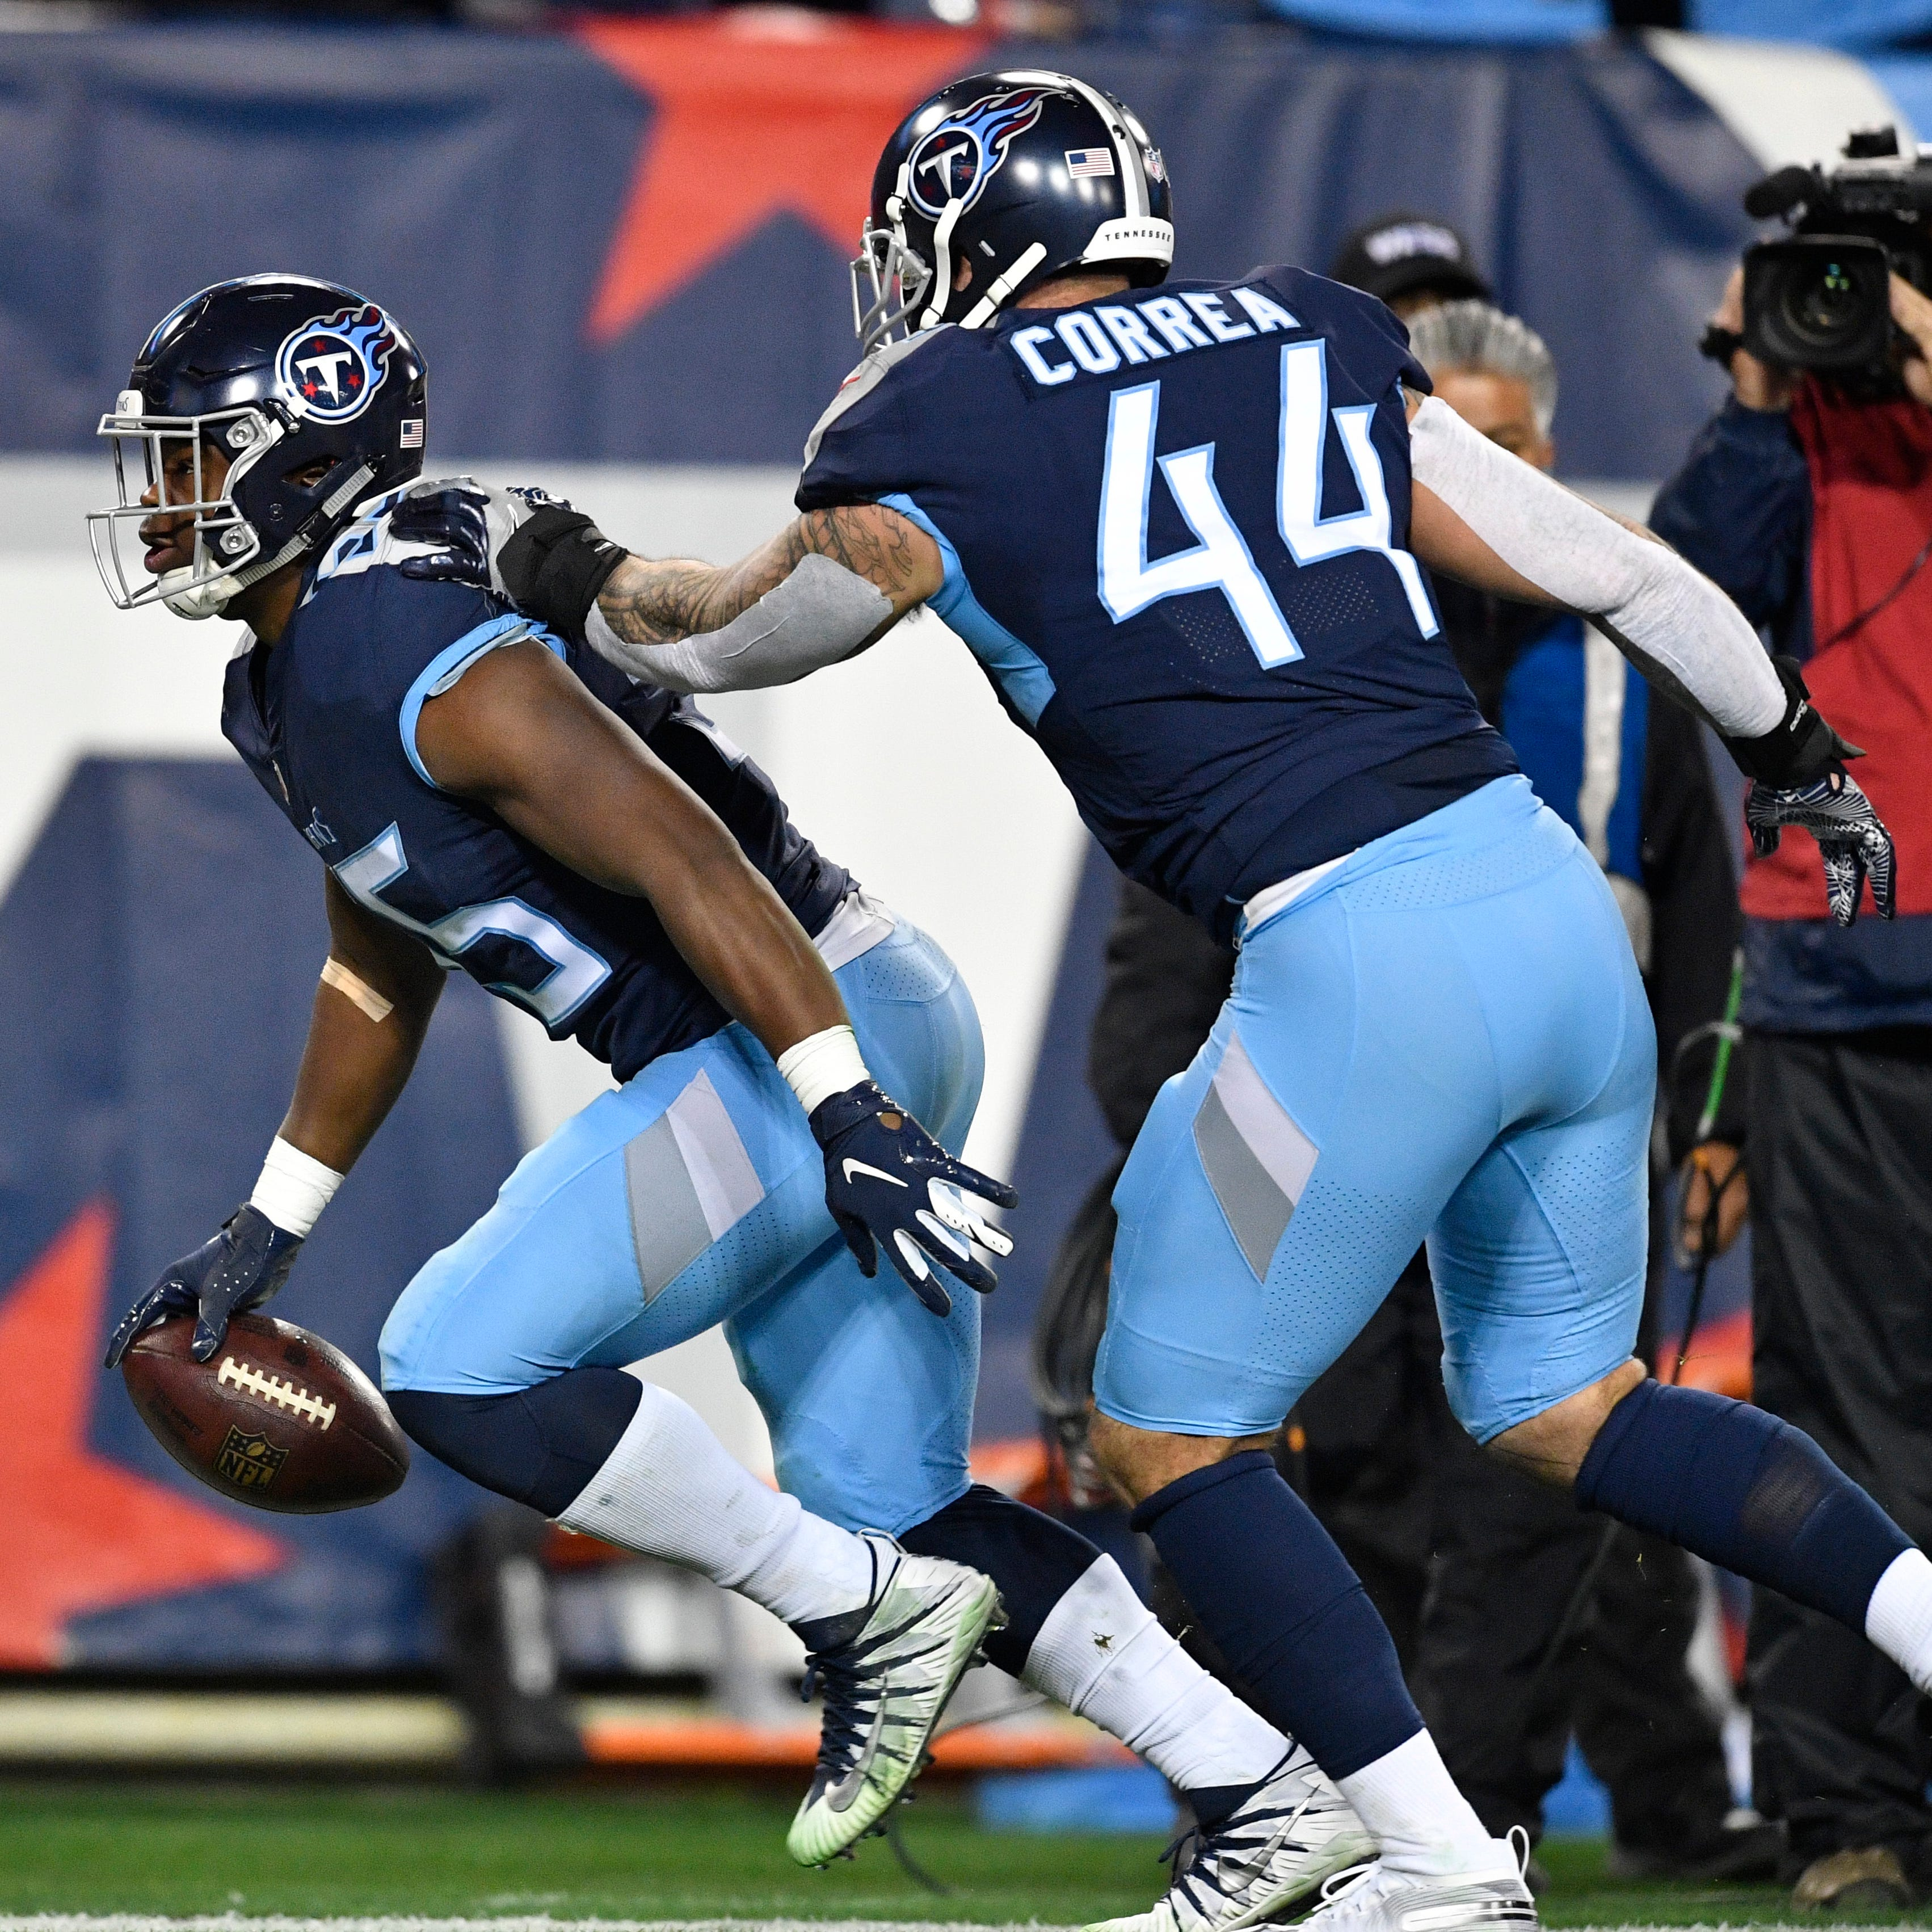 Titans defense couldn't get off the field against Colts